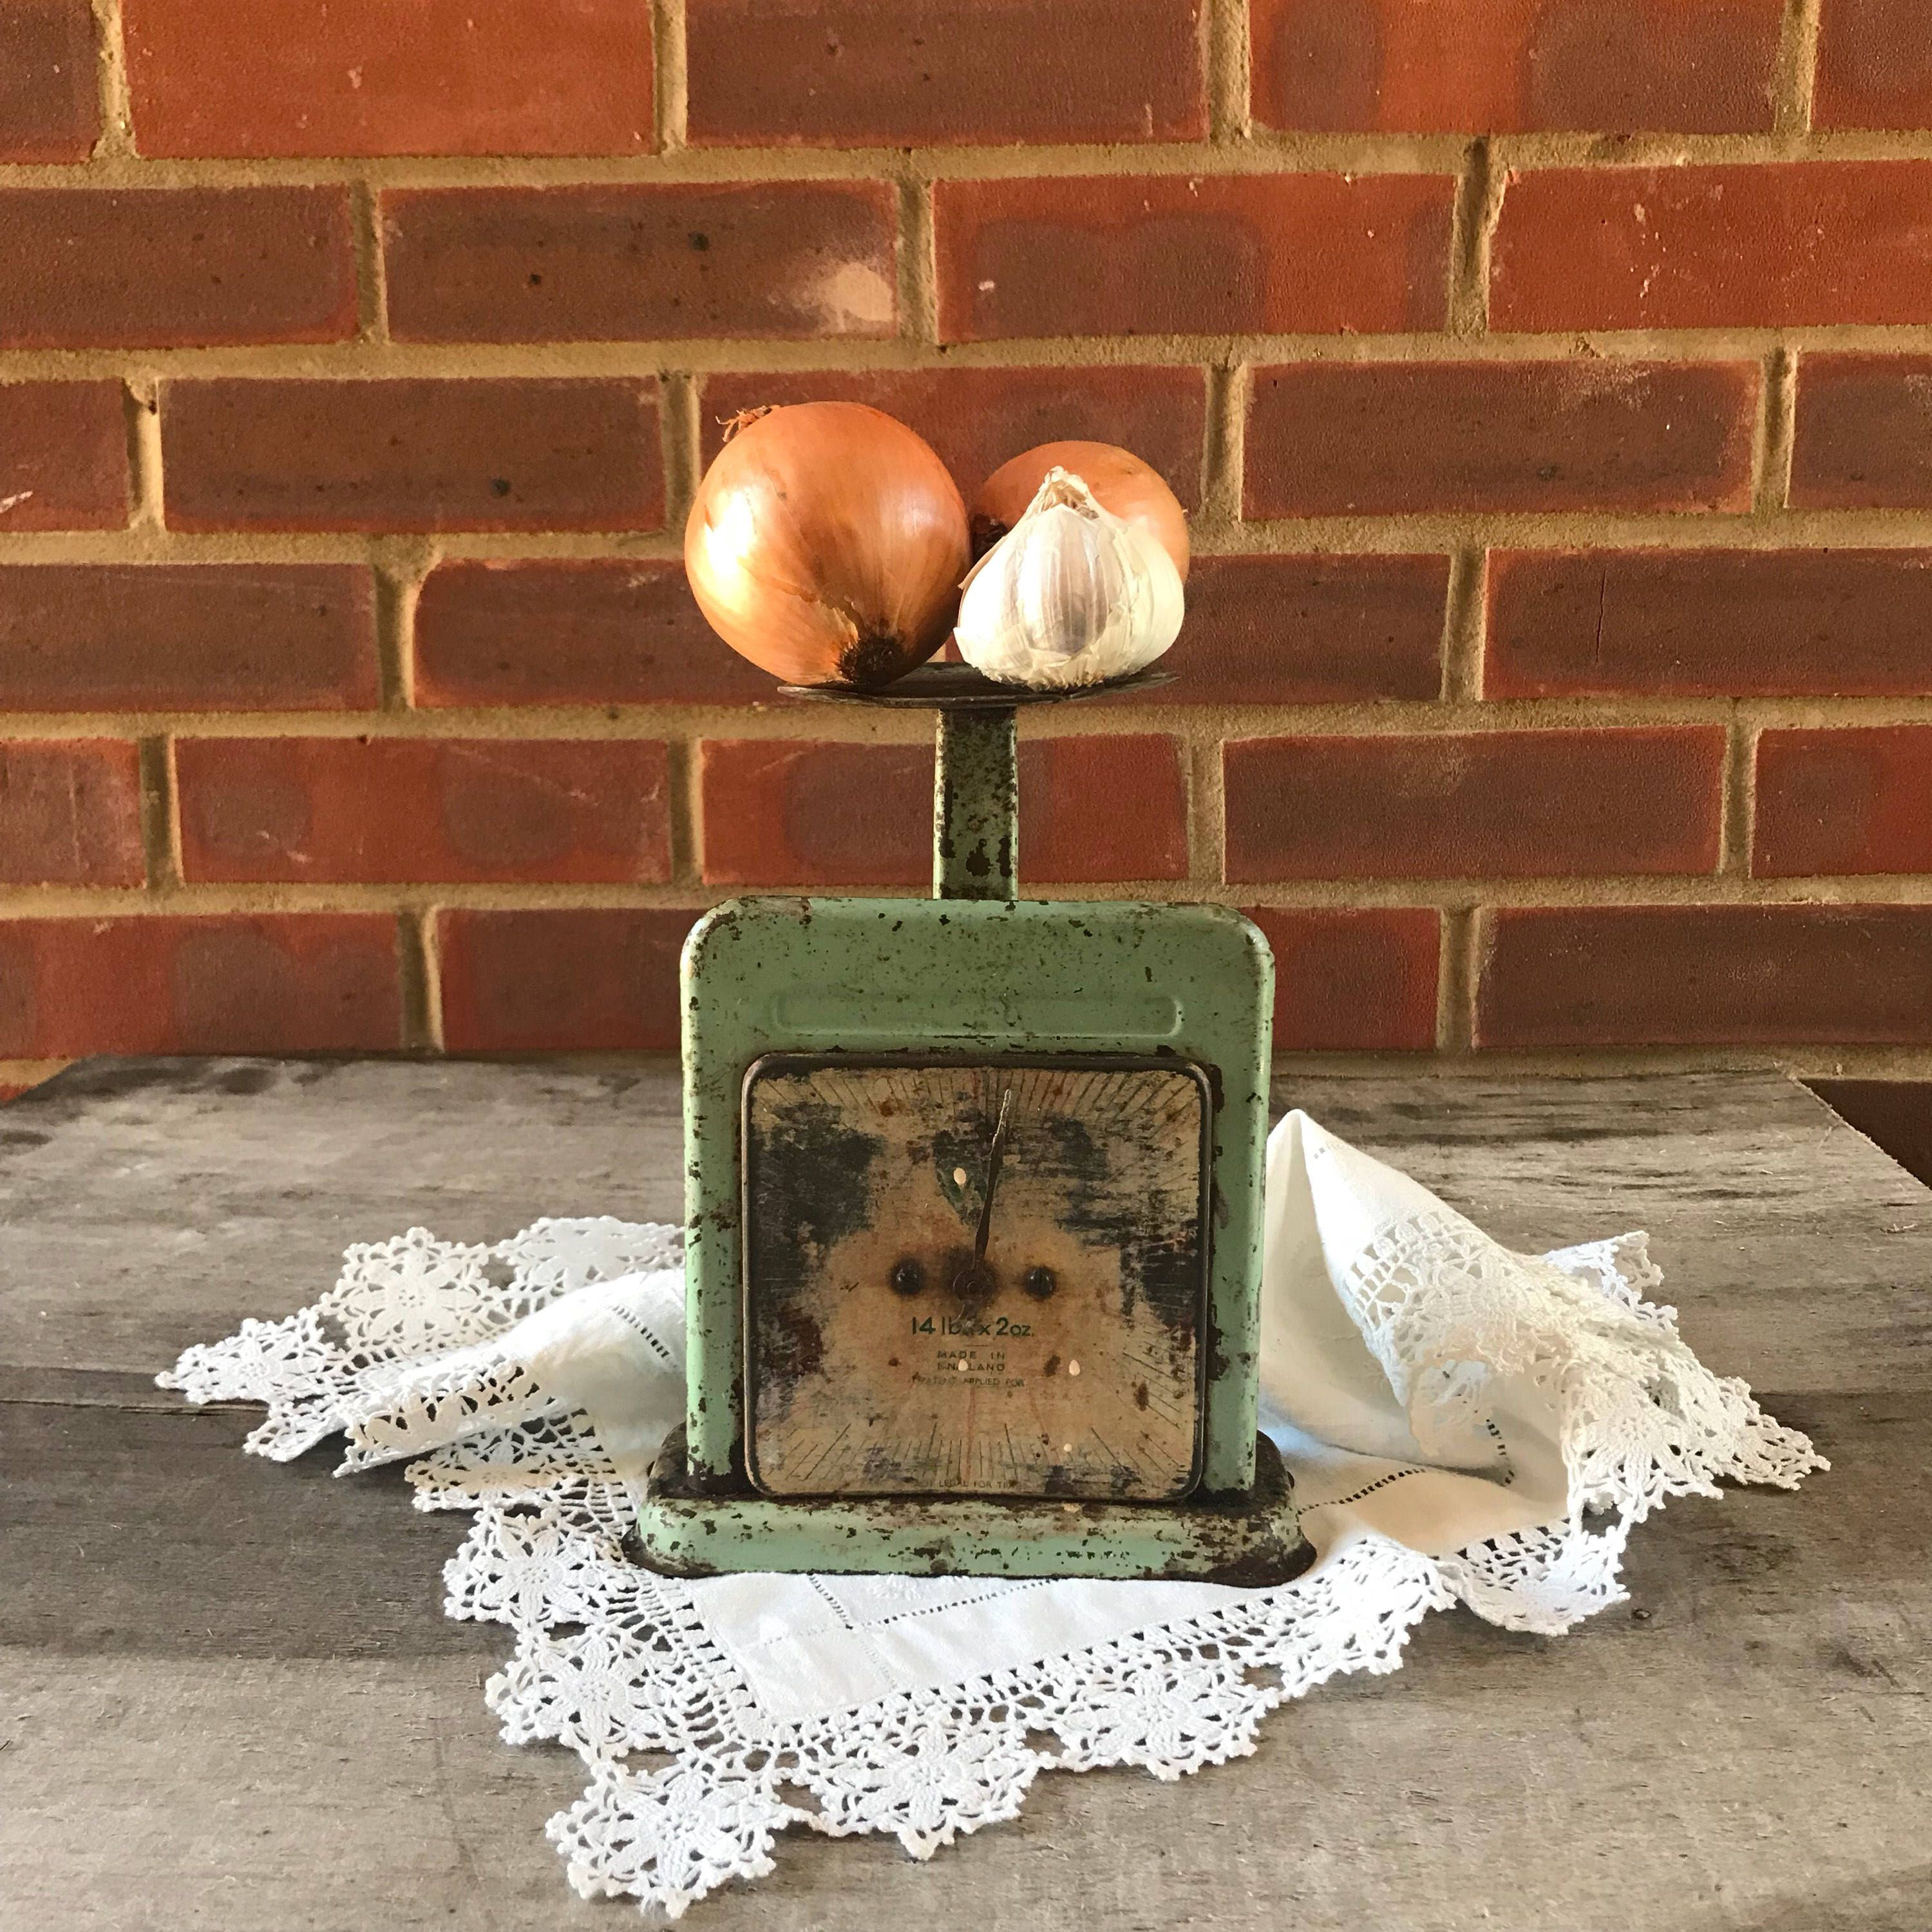 Antique Home Kitchen Scales Vintage Weigthing Green Rusty Retro Restaurant Decor Display England